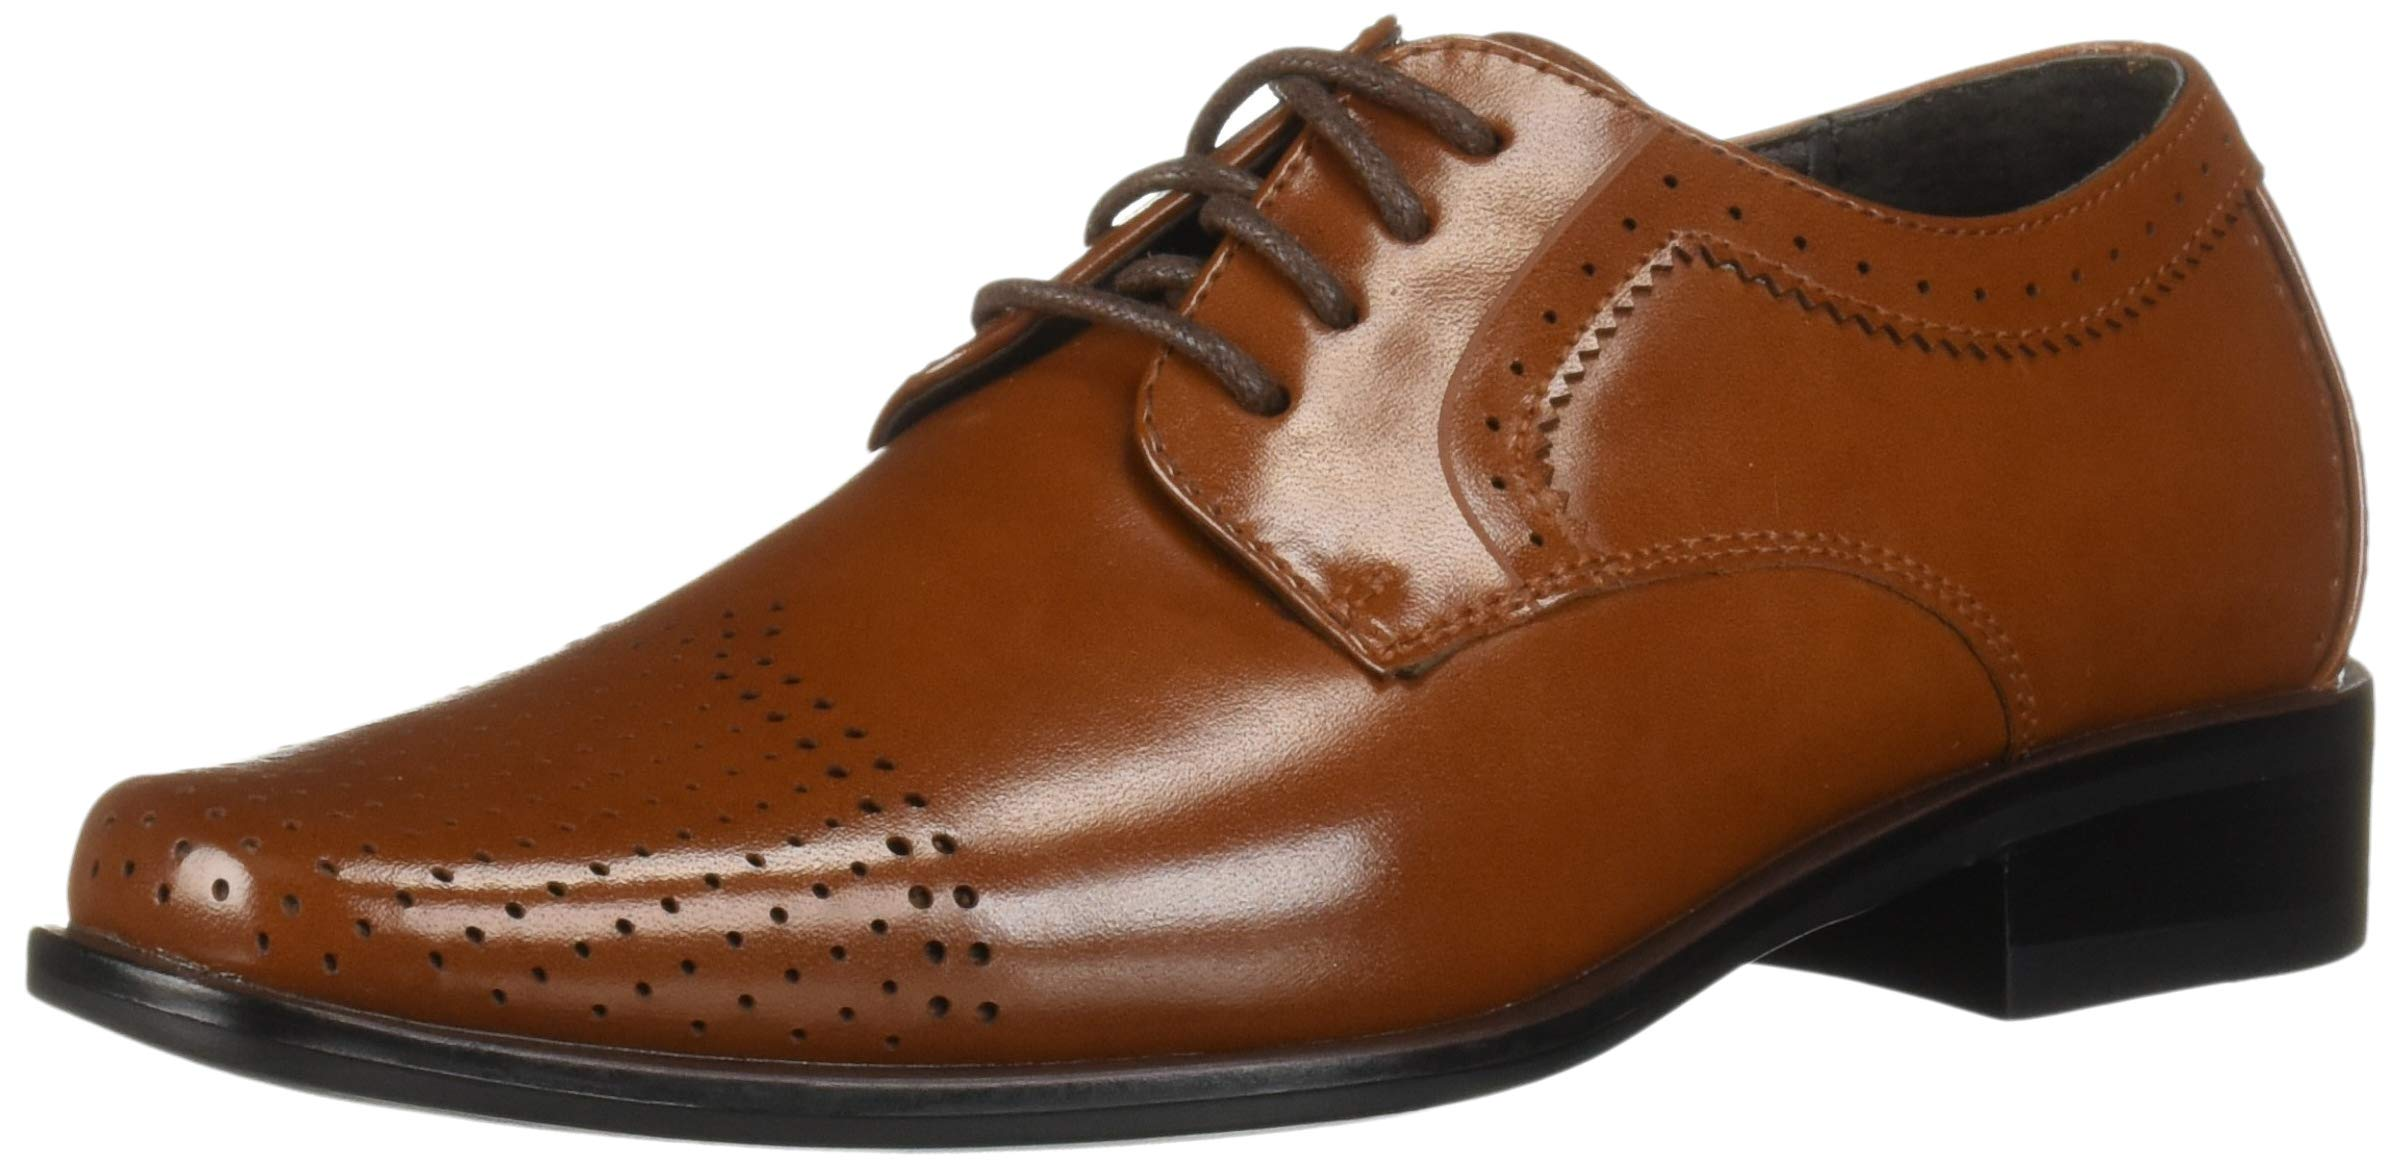 STACY ADAMS Unisex Sanborn Perfed Cap Toe Lace-Up Oxford, Cognac 5 M US Big Kid